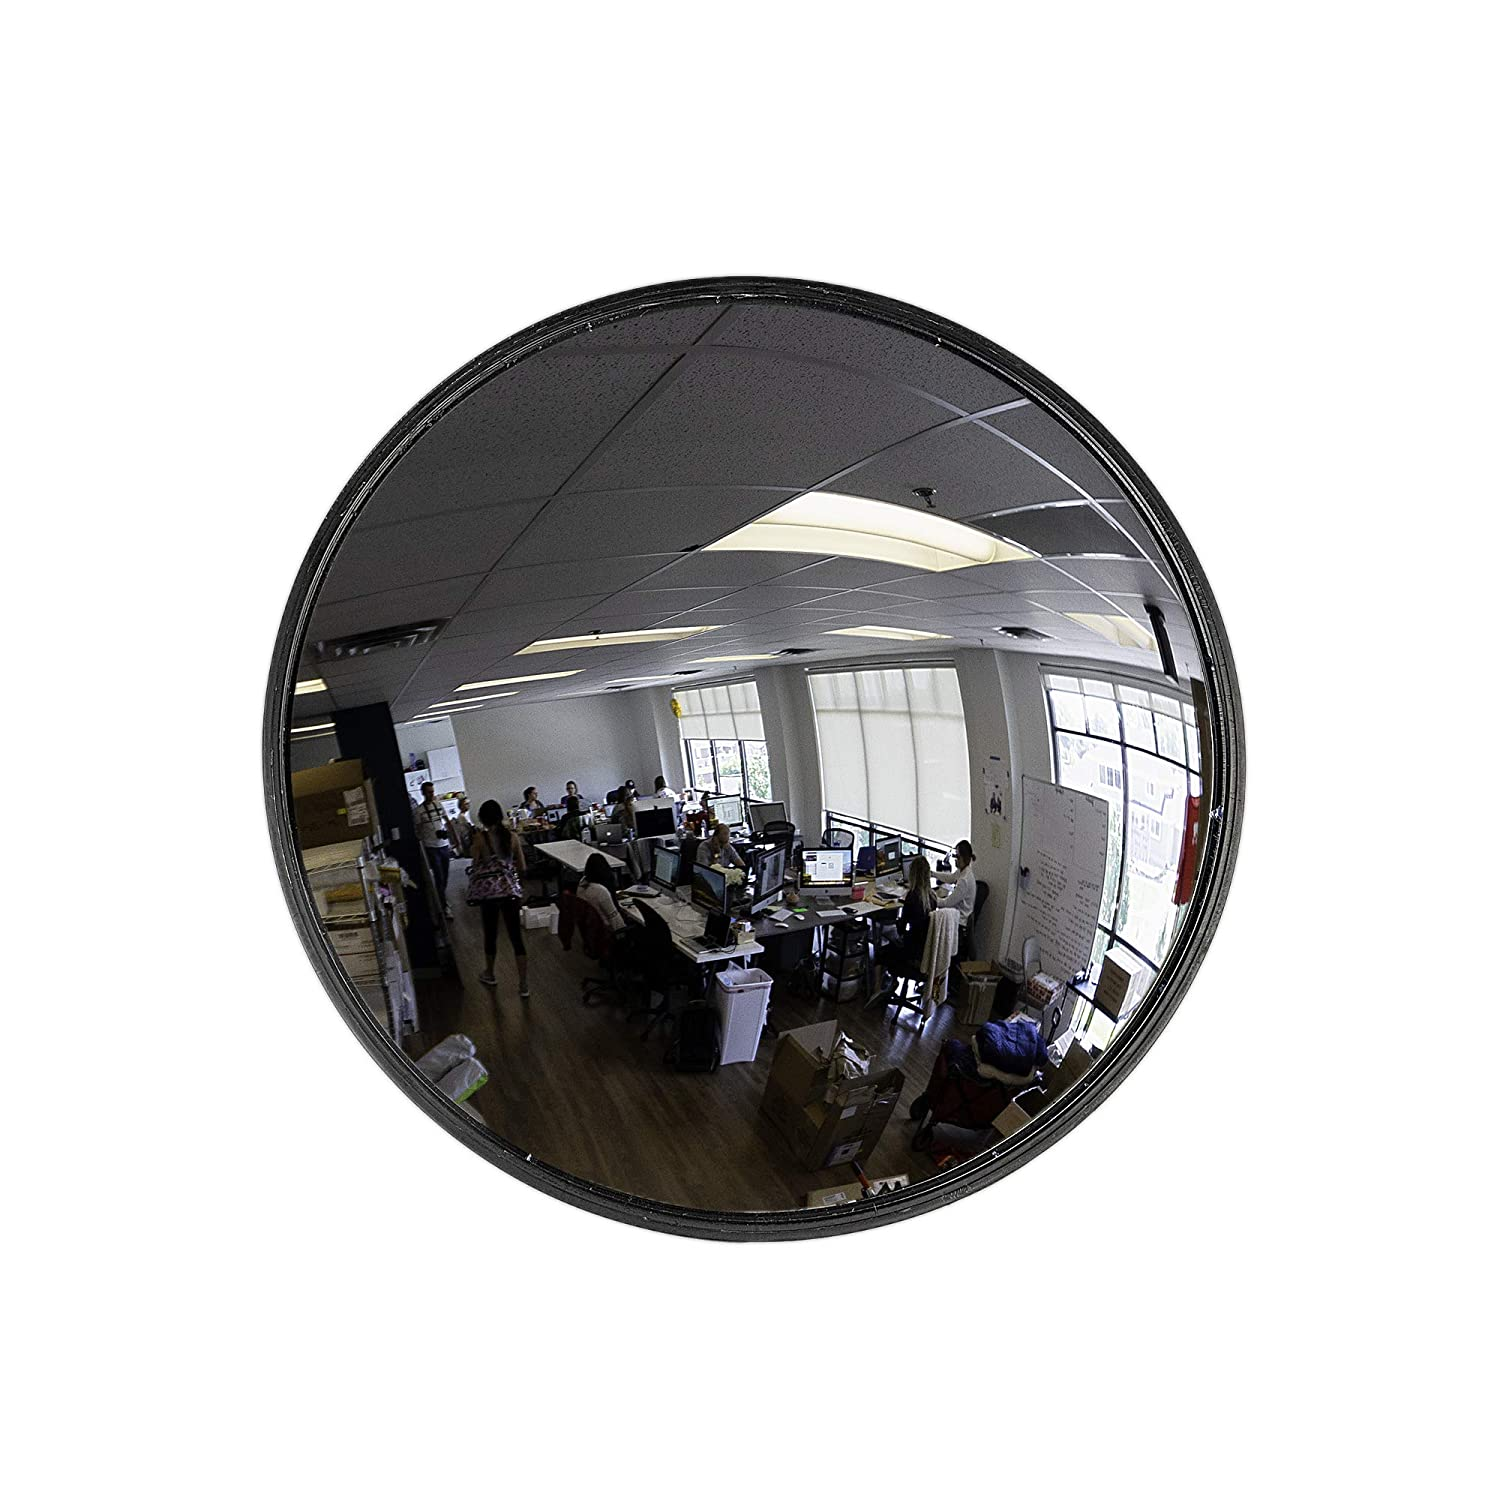 """12"""" Acrylic Convex Mirror, Round Indoor Security Mirror for the Garage Blind Spot, Store Safety, Warehouse Side View, and More, Circular Wall Mirror for Personal or Office Use - Vision Metalizers"""